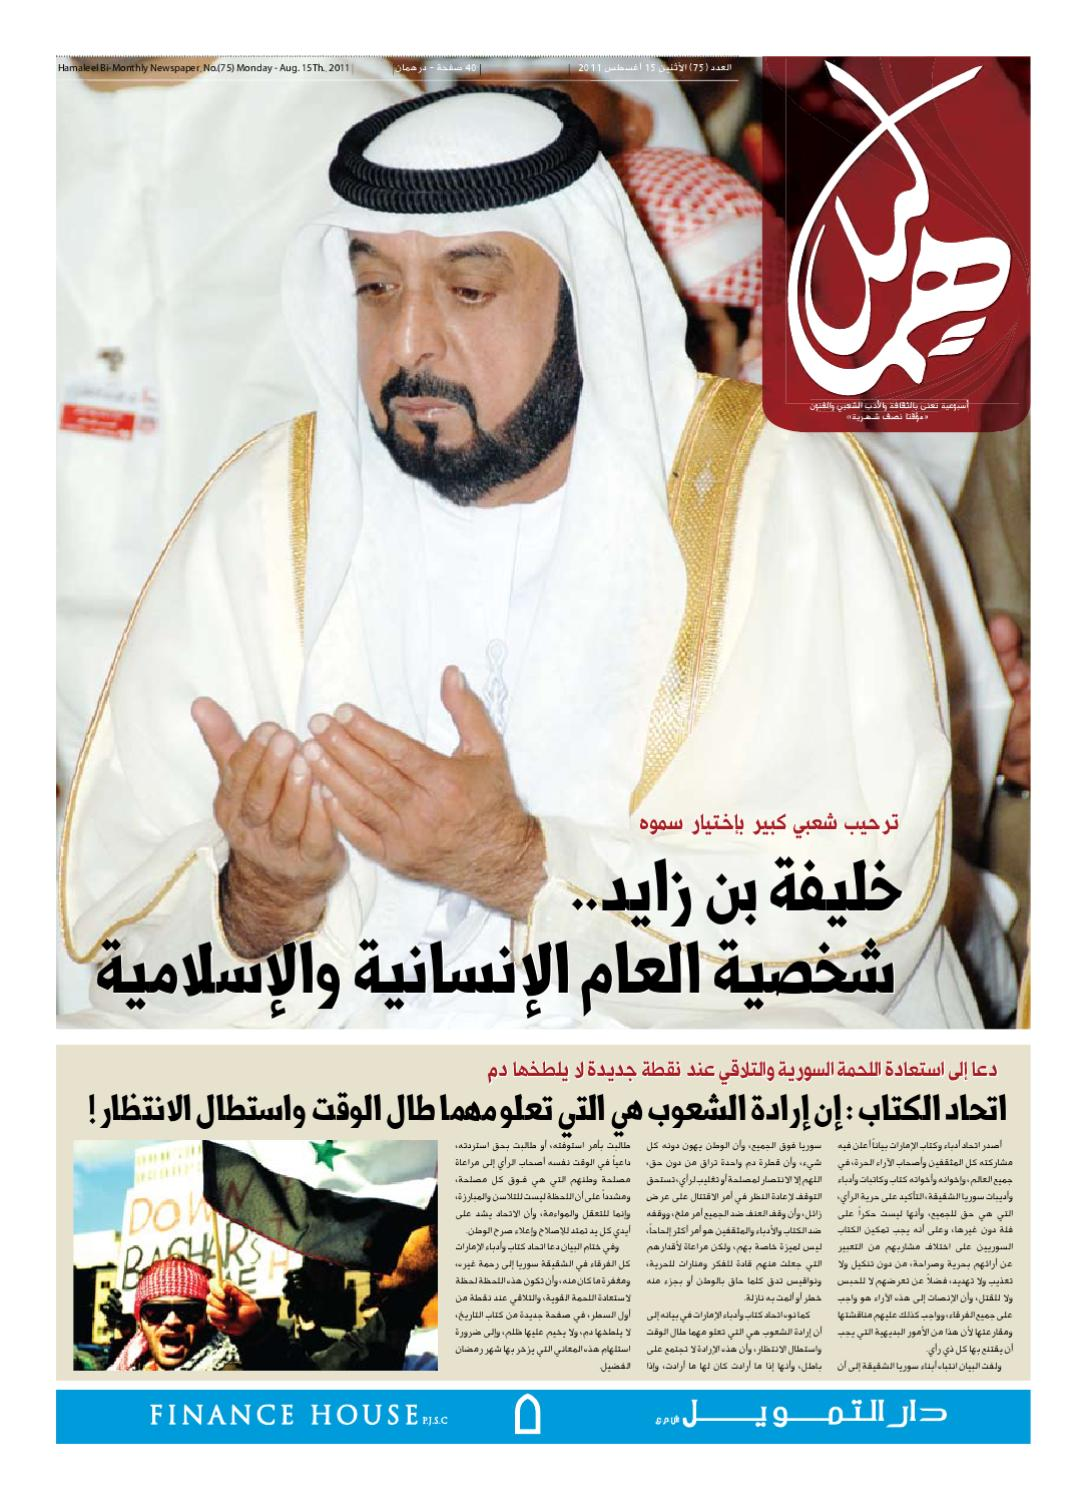 f344295474c0d Issue No. 75 by Hamaleel newspaper - issuu